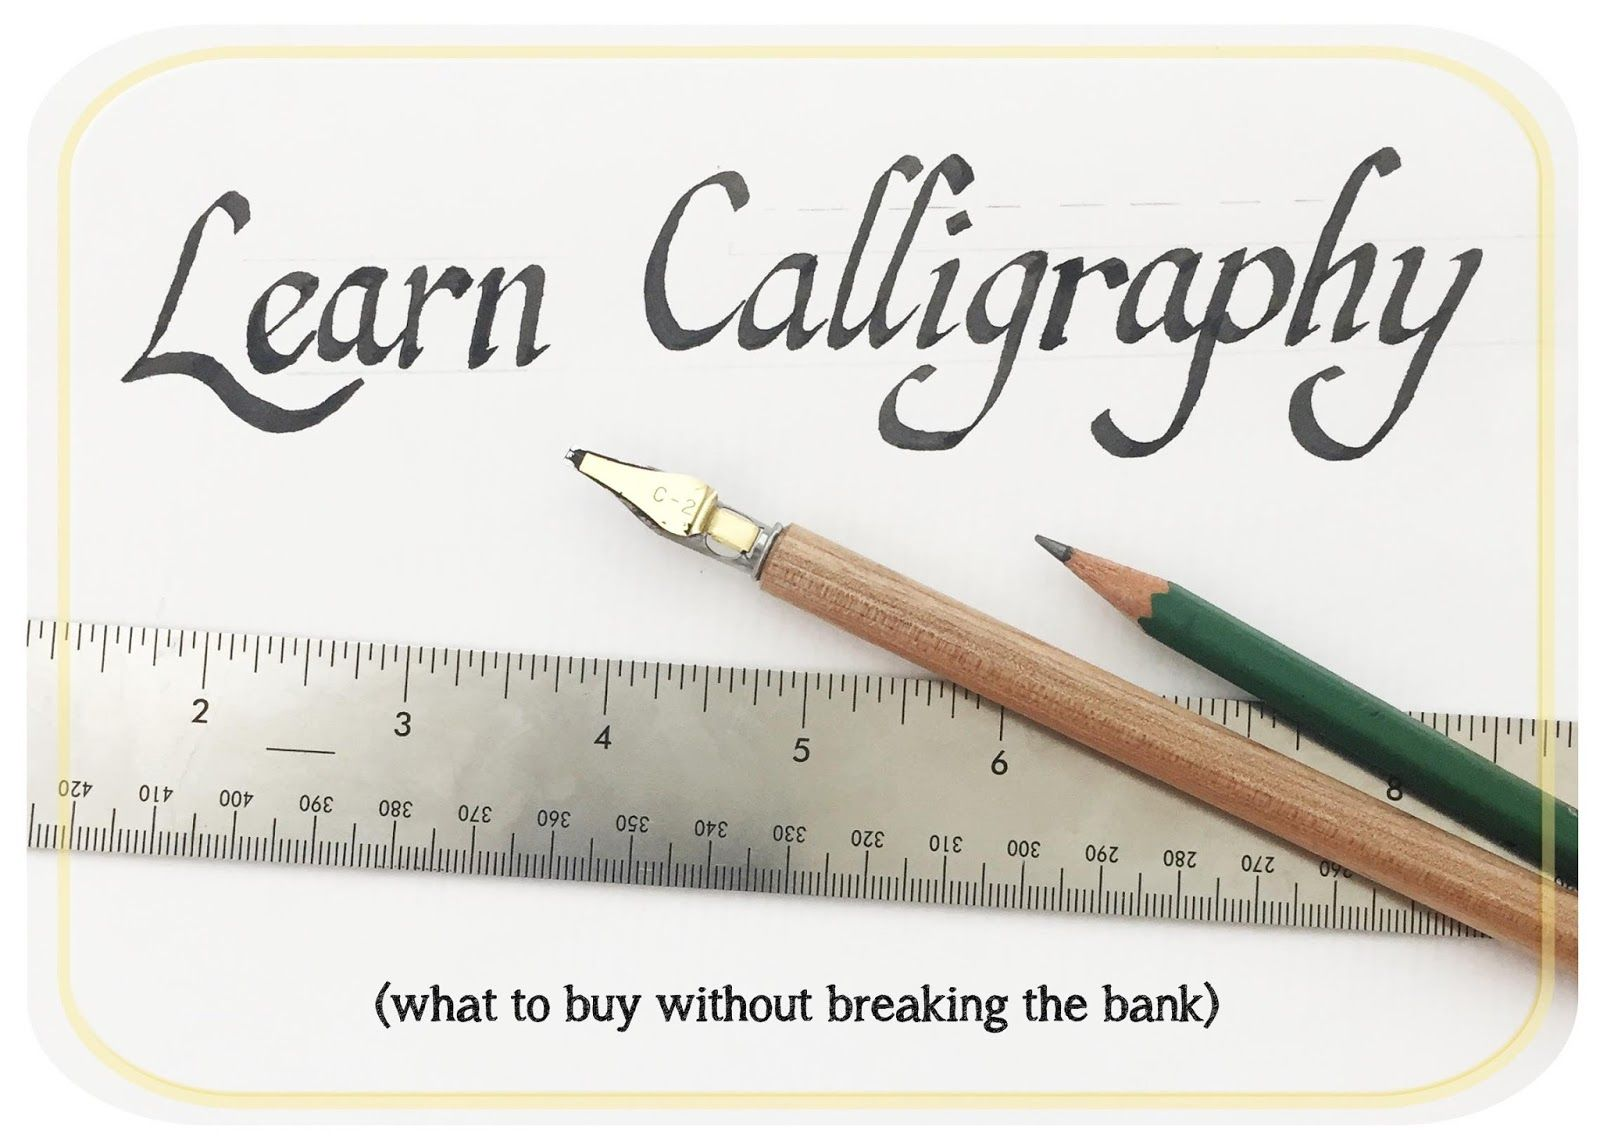 Calligraphy Course - How To Get Started With The Basic